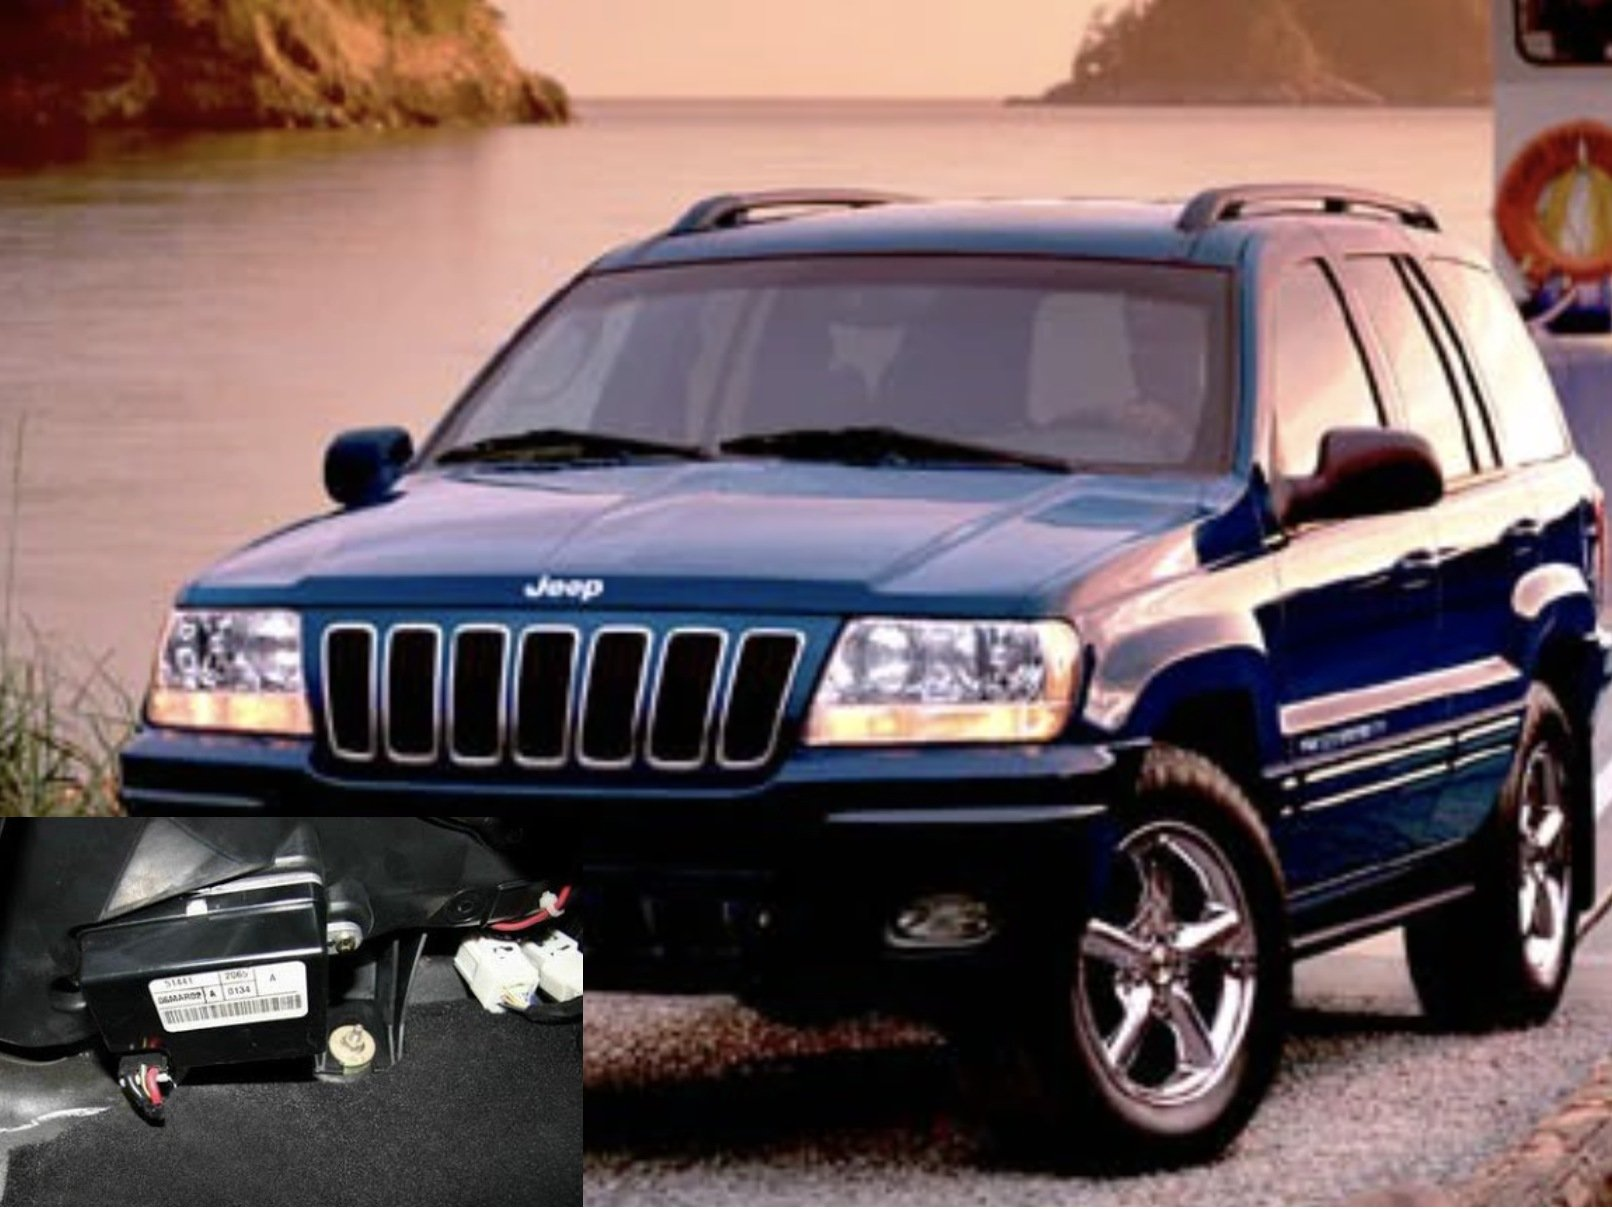 1999-2004 Jeep Grand Cherokee AC/Heater Fan Wire Connector Repair (1999,  2000, 2001, 2002, 2003, 2004) - iFixit Repair GuideiFixit